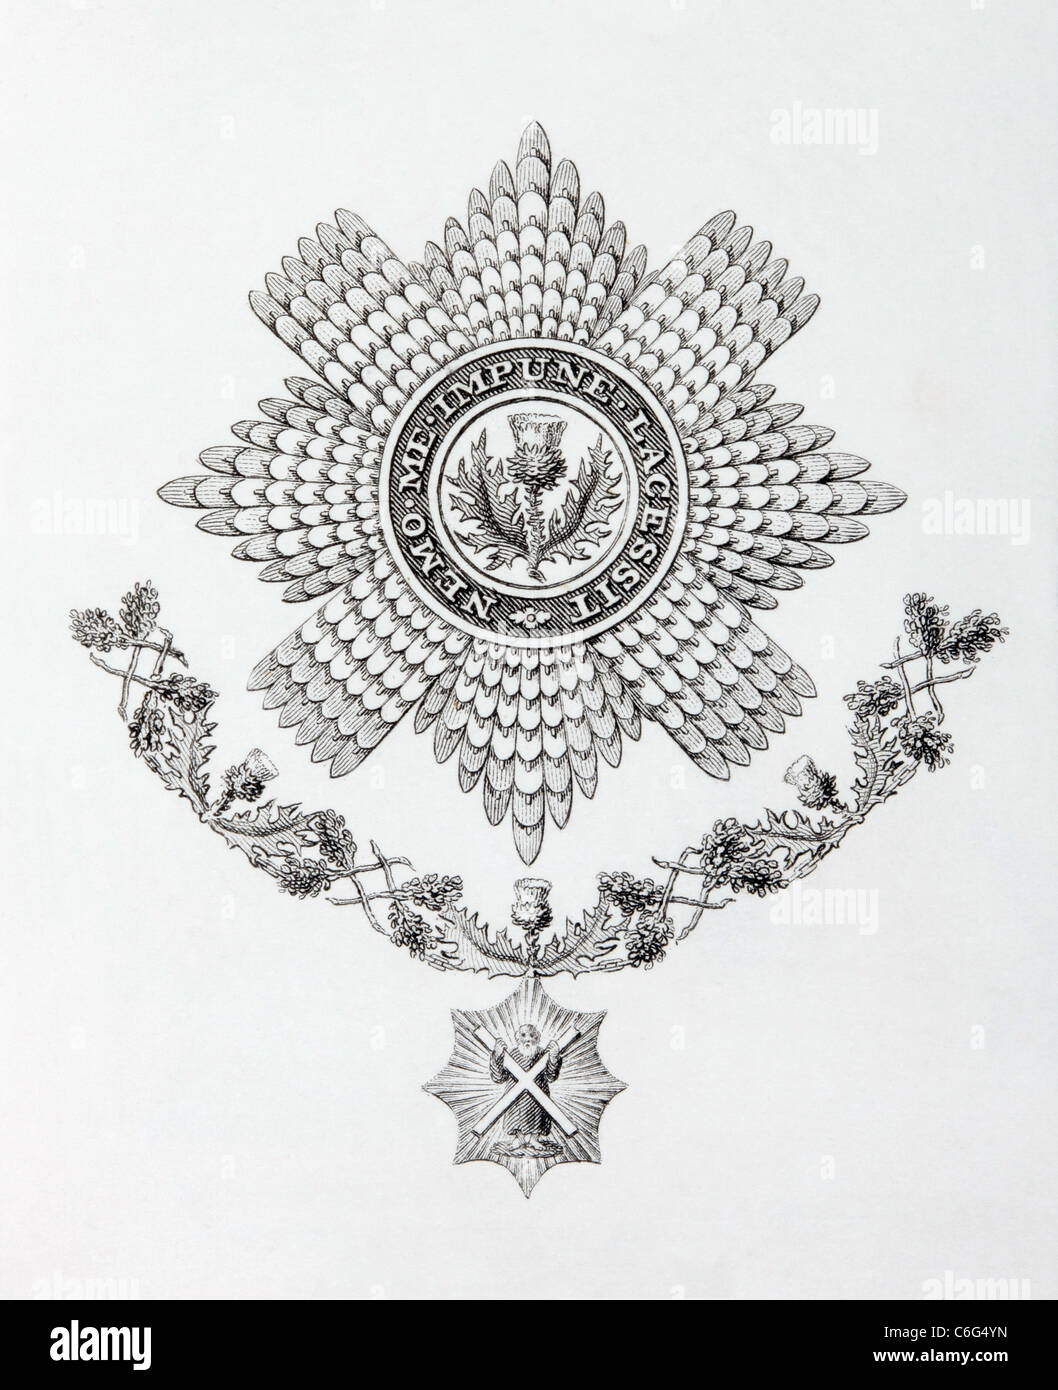 Star, Collar and Badge of the Order of the Thistle. - Stock Image